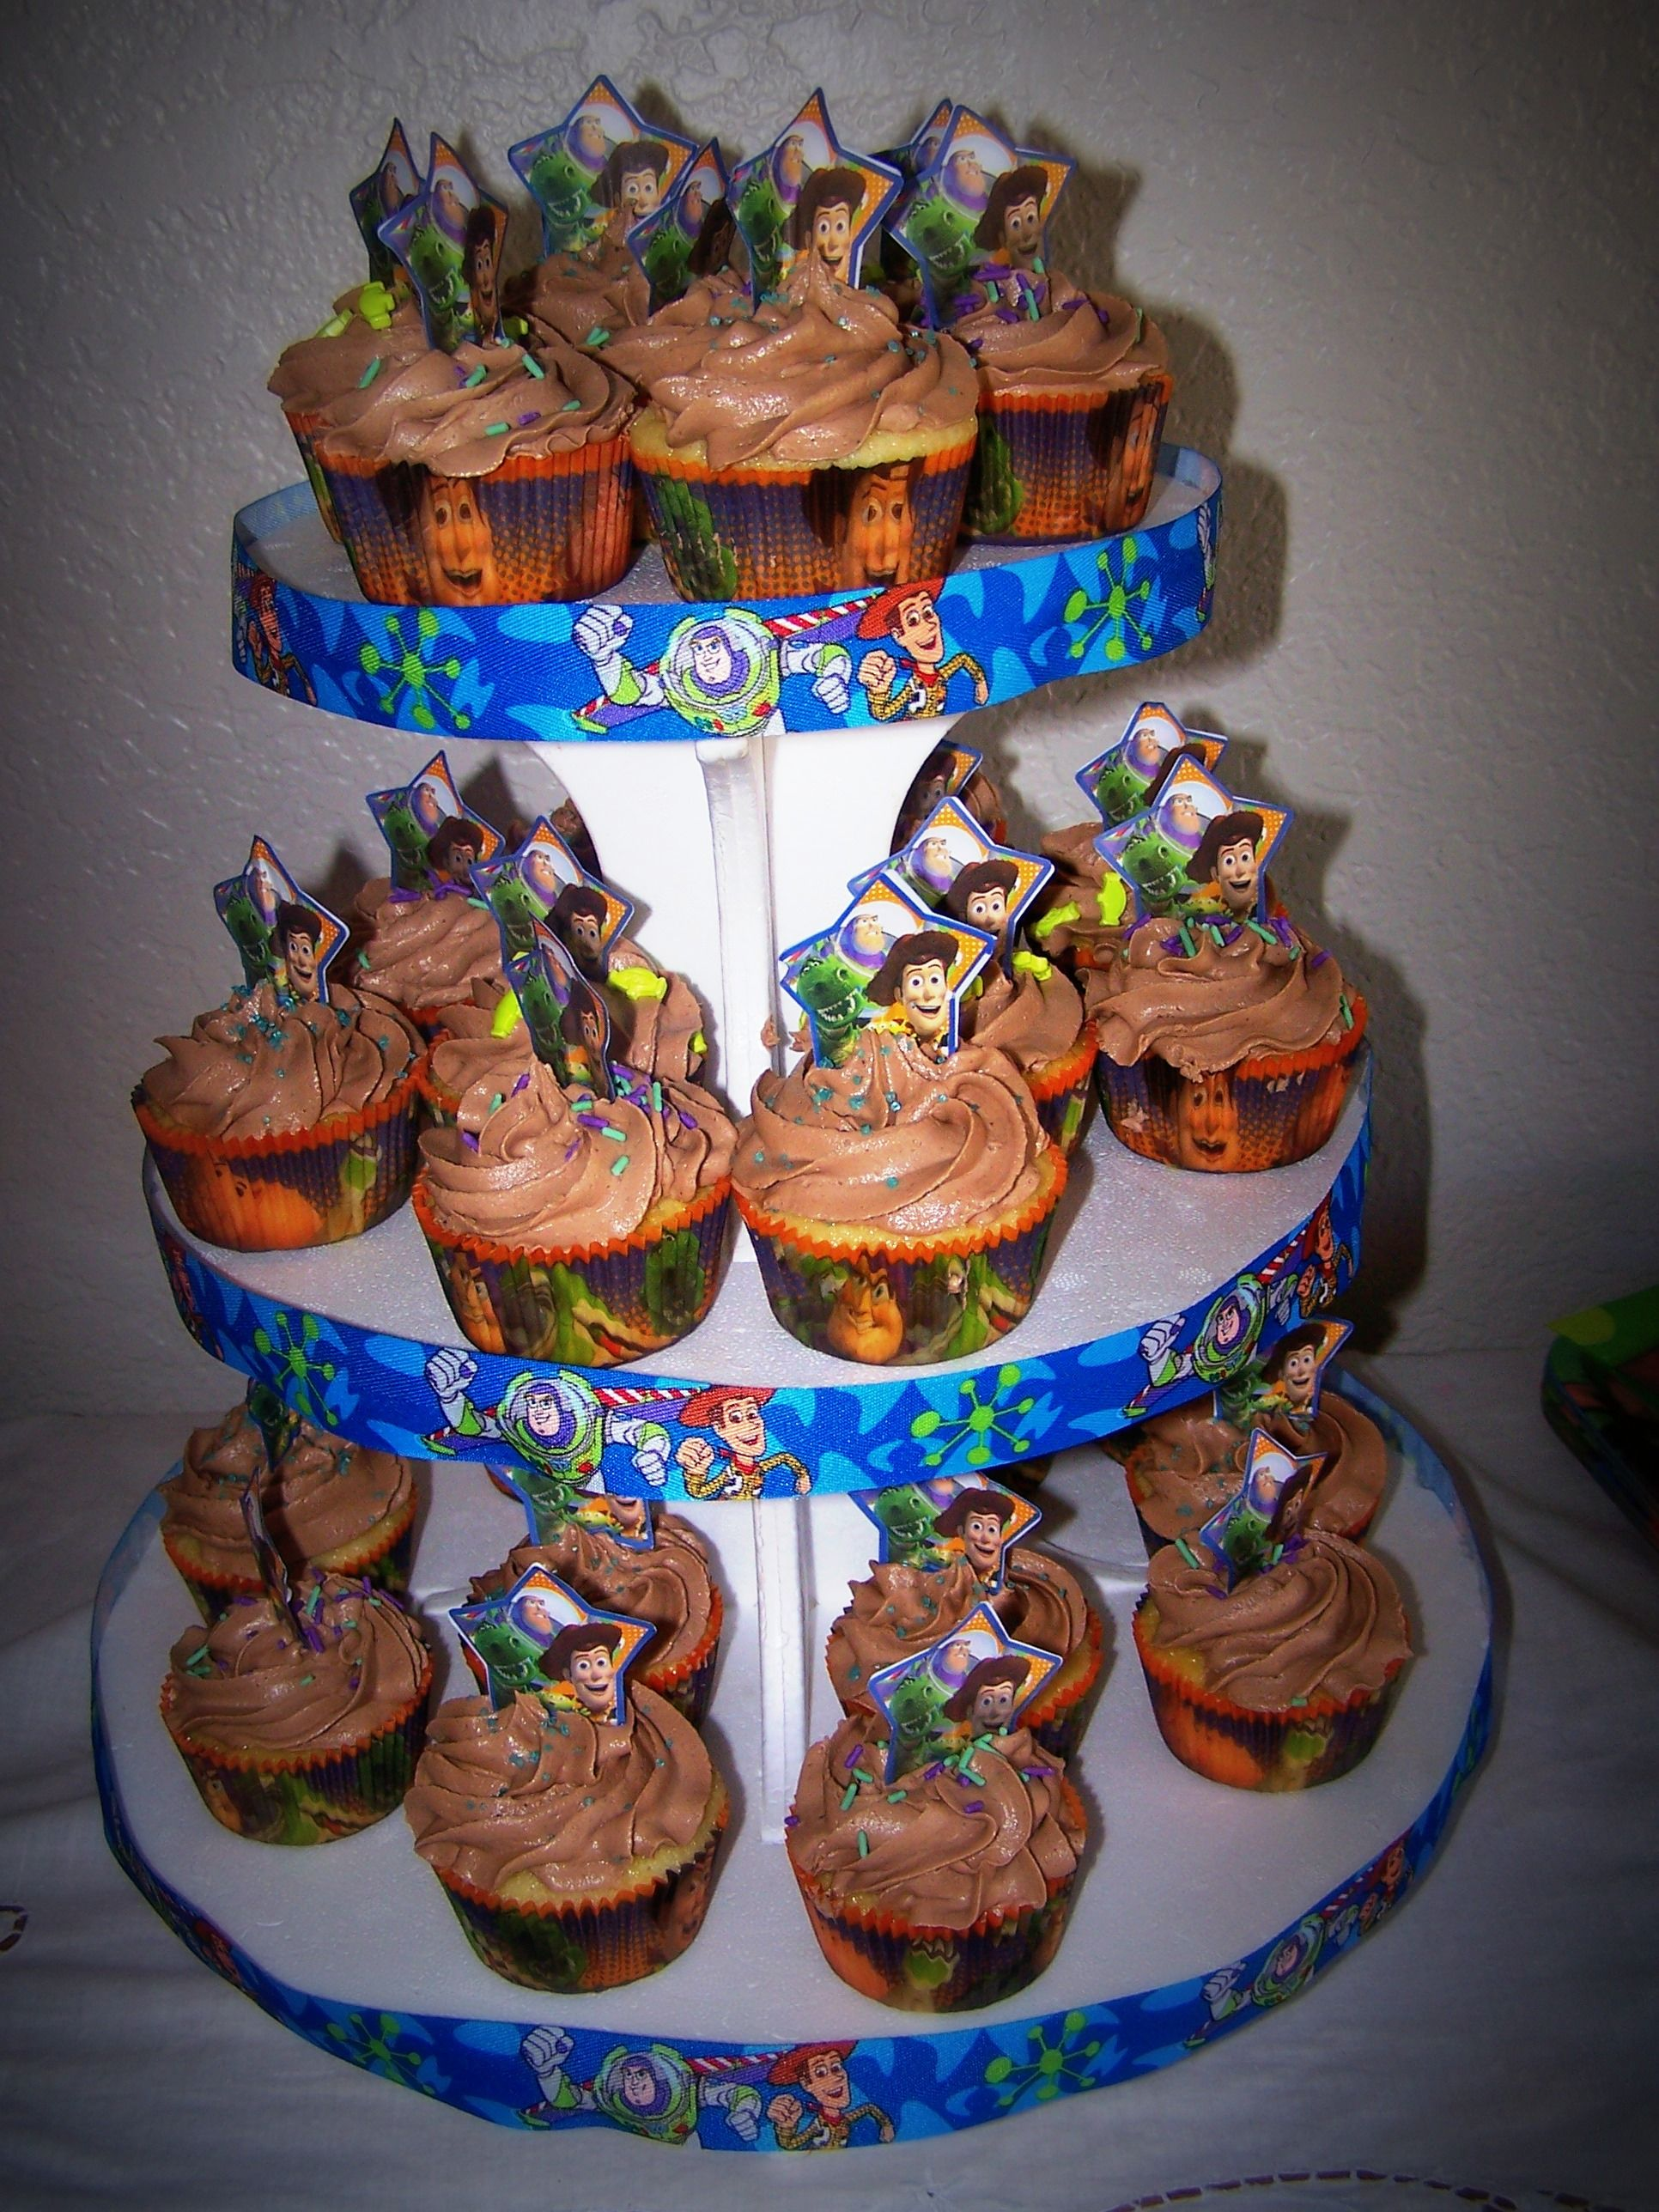 Wondrous Toy Story Cupcakes Walmart Has That Ribbon For The Stand Toy Birthday Cards Printable Trancafe Filternl